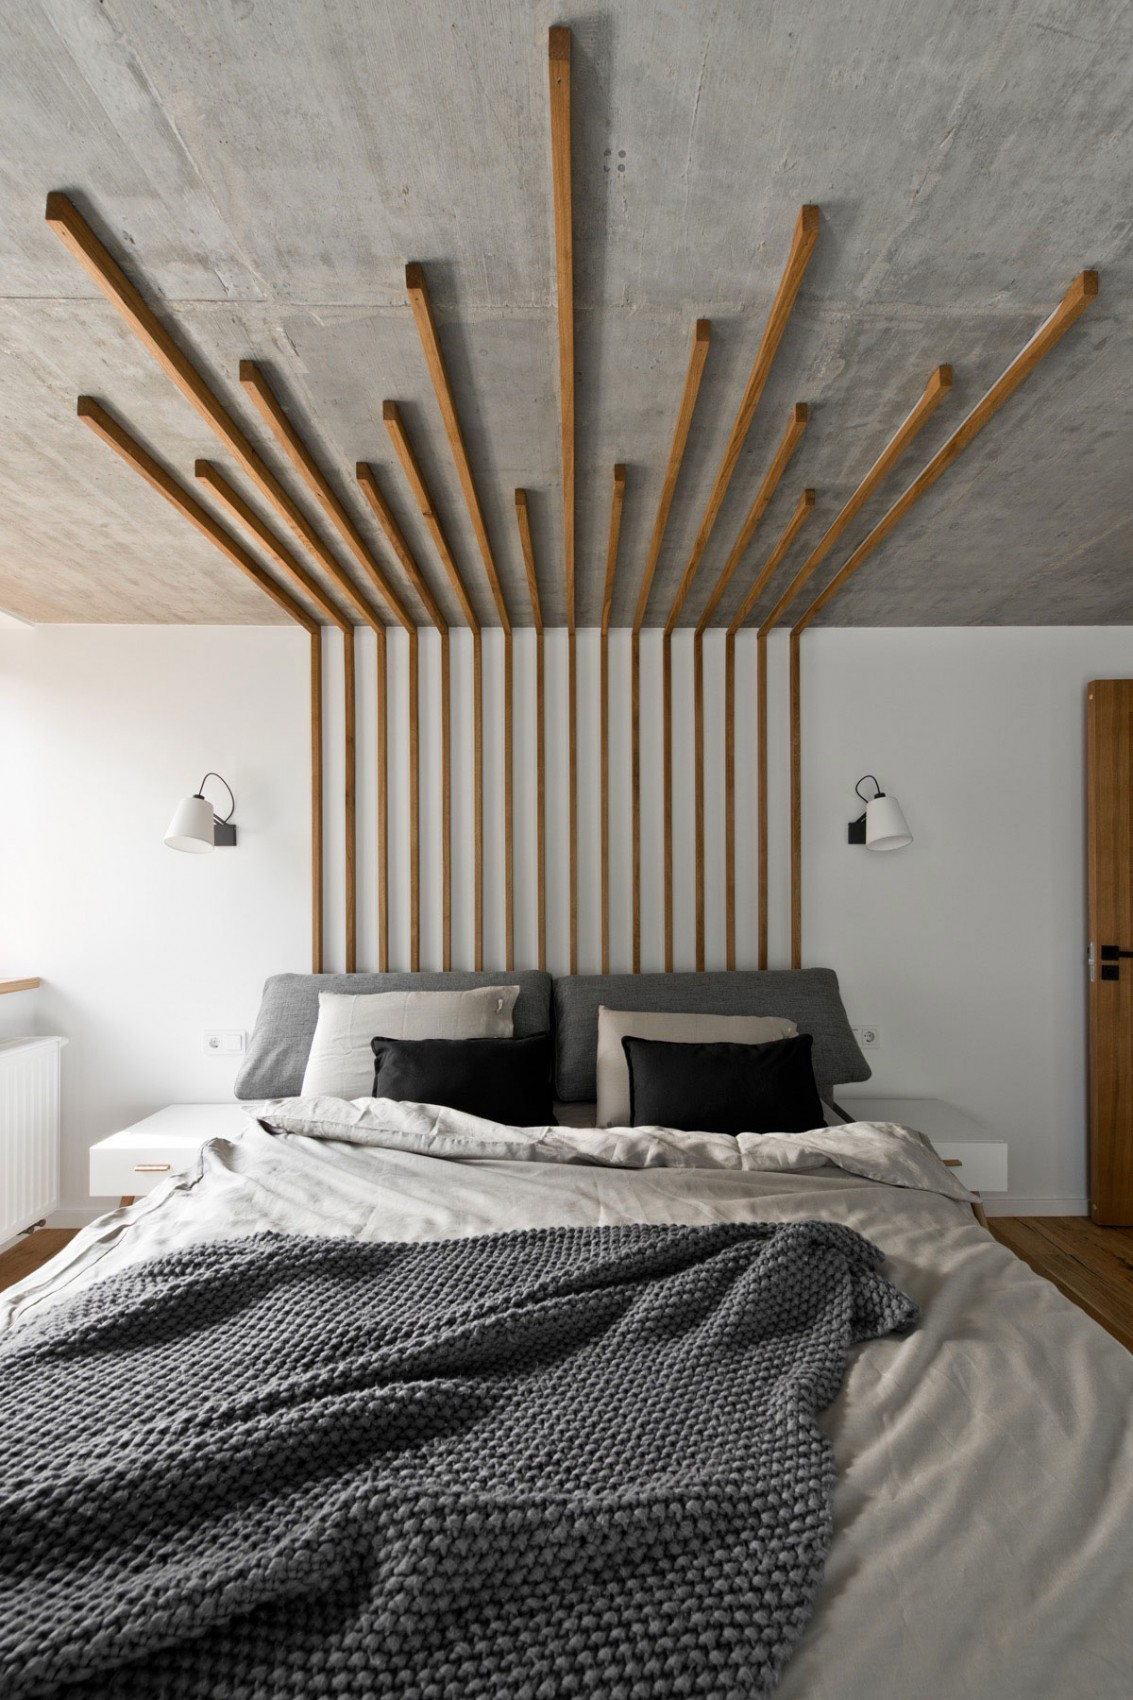 Wooden ceiling lights by InArch